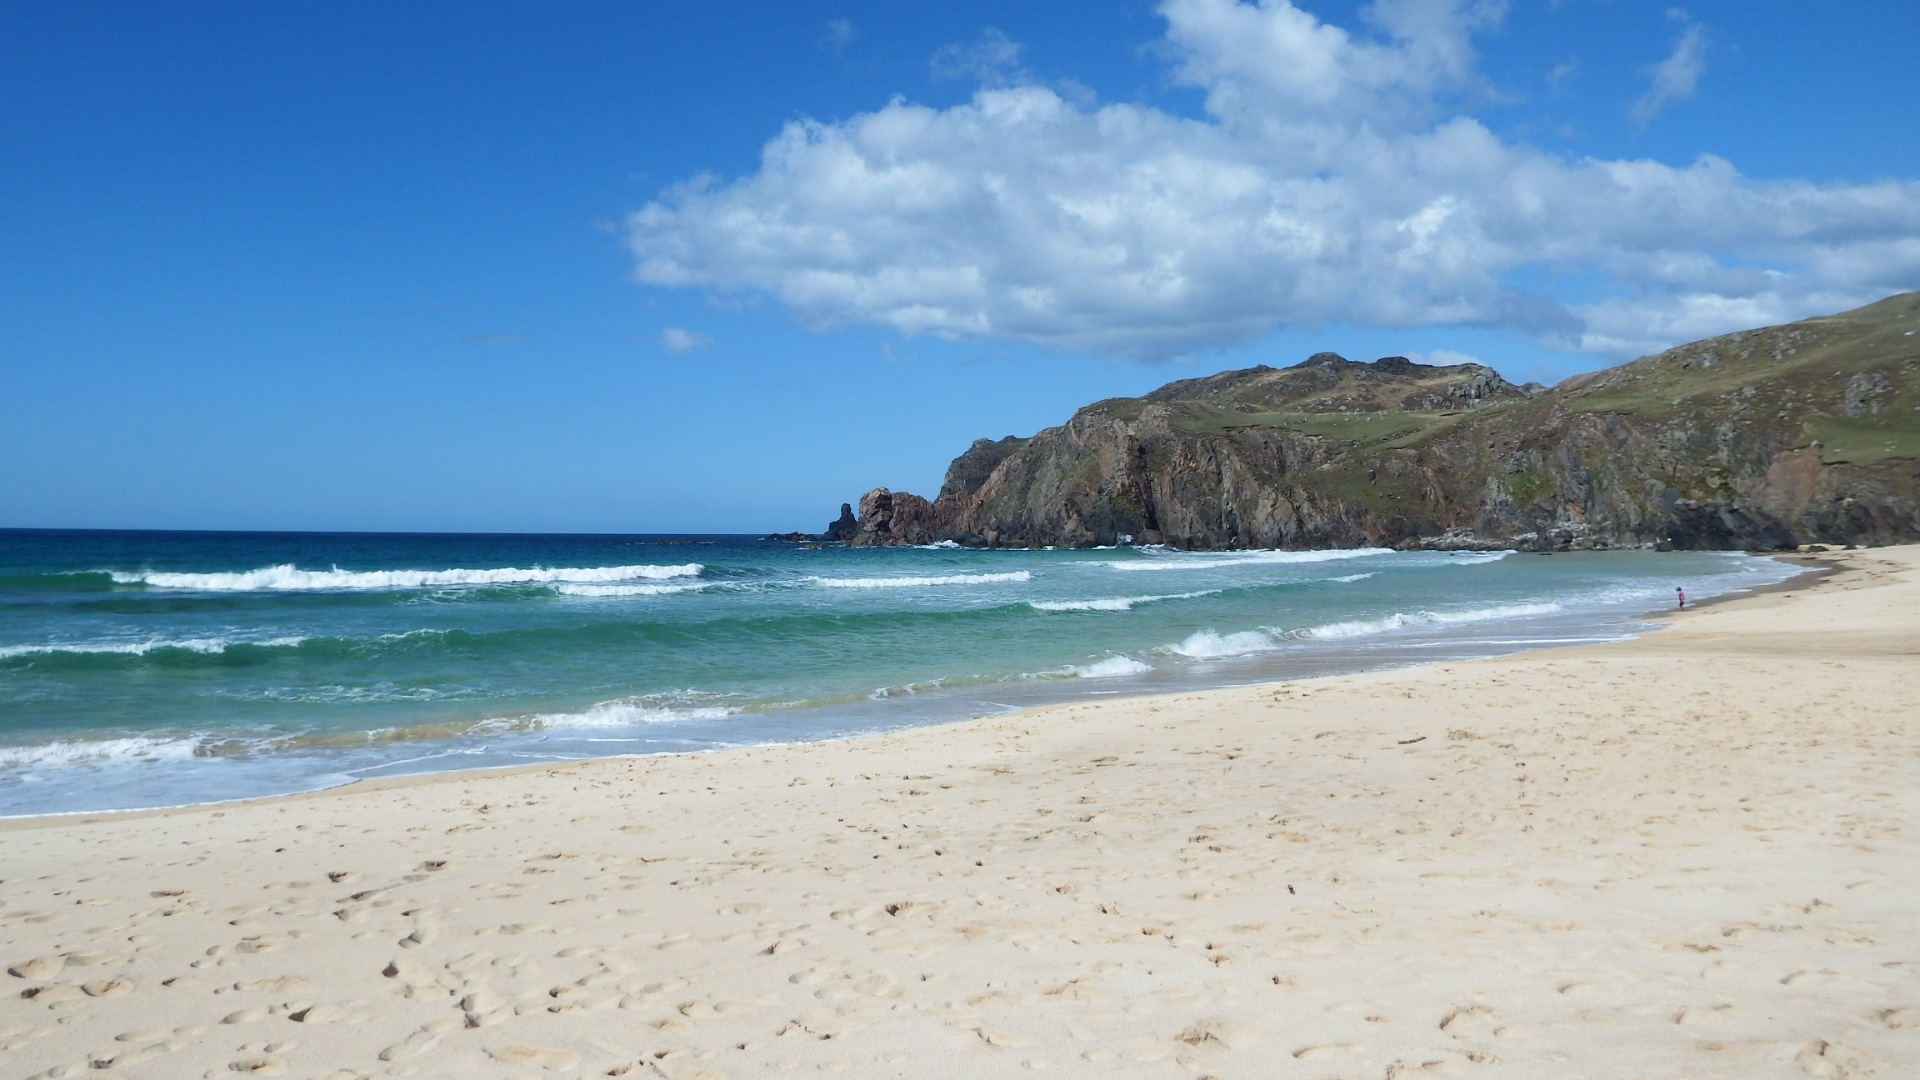 dalmore beach isle of lewis by kenneth campbell